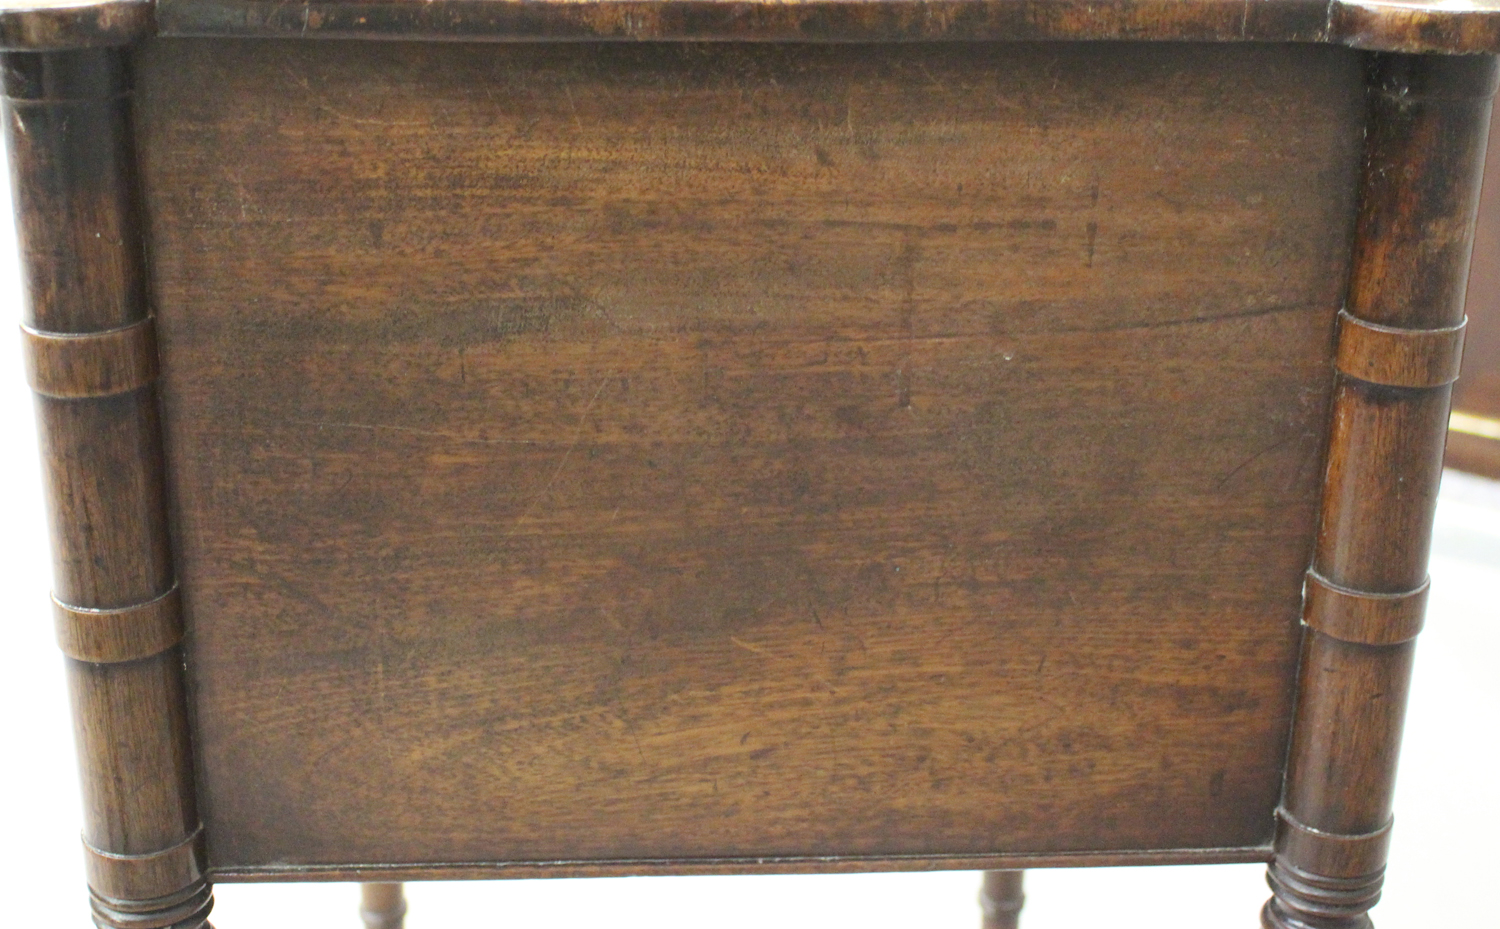 A George IV figured mahogany side table with projecting corners, the two drawers with bone handles - Image 4 of 8